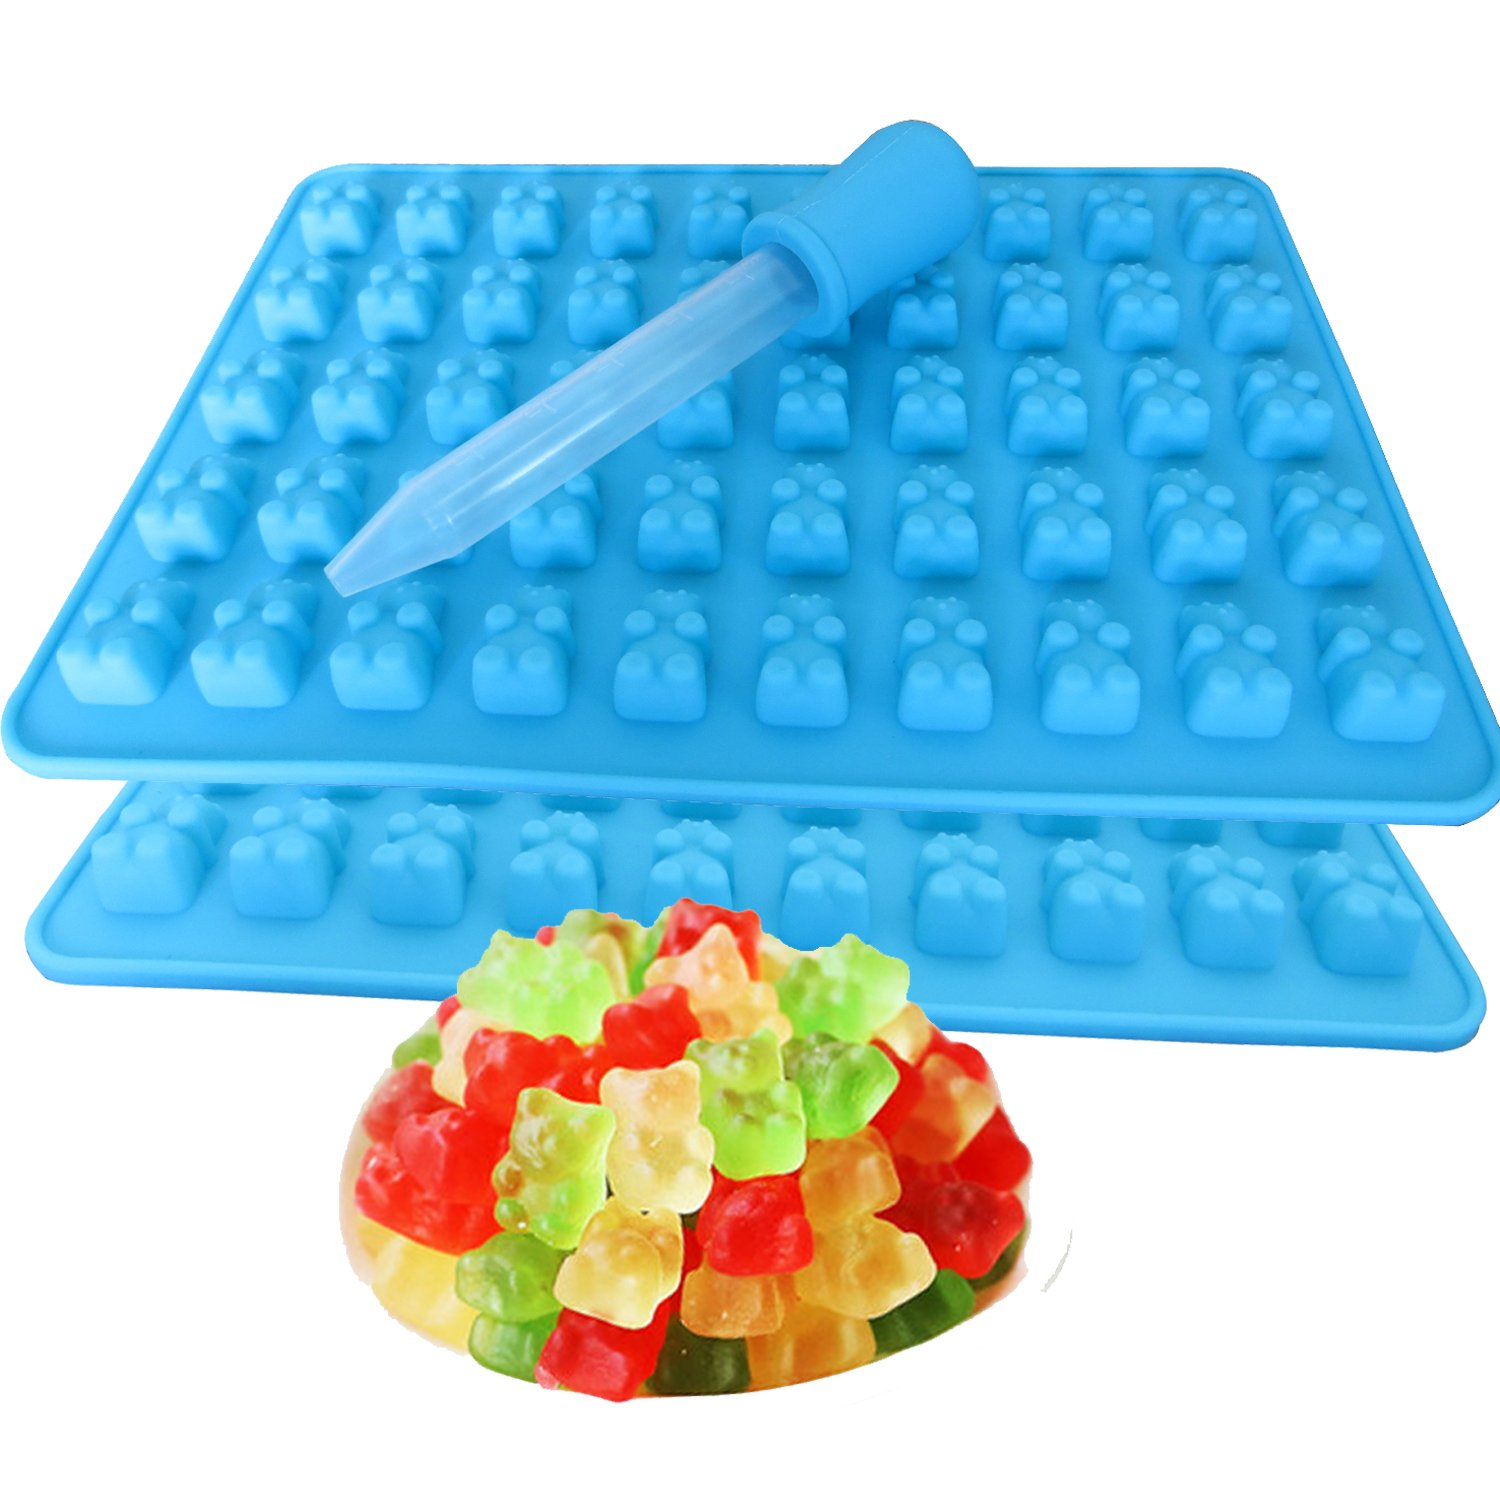 2 Pack 50 Cavity Silicone Gummy Bear Candy Chocolate Mold With a Bonus Dropper Making Cute Gift For Your Kids B-001